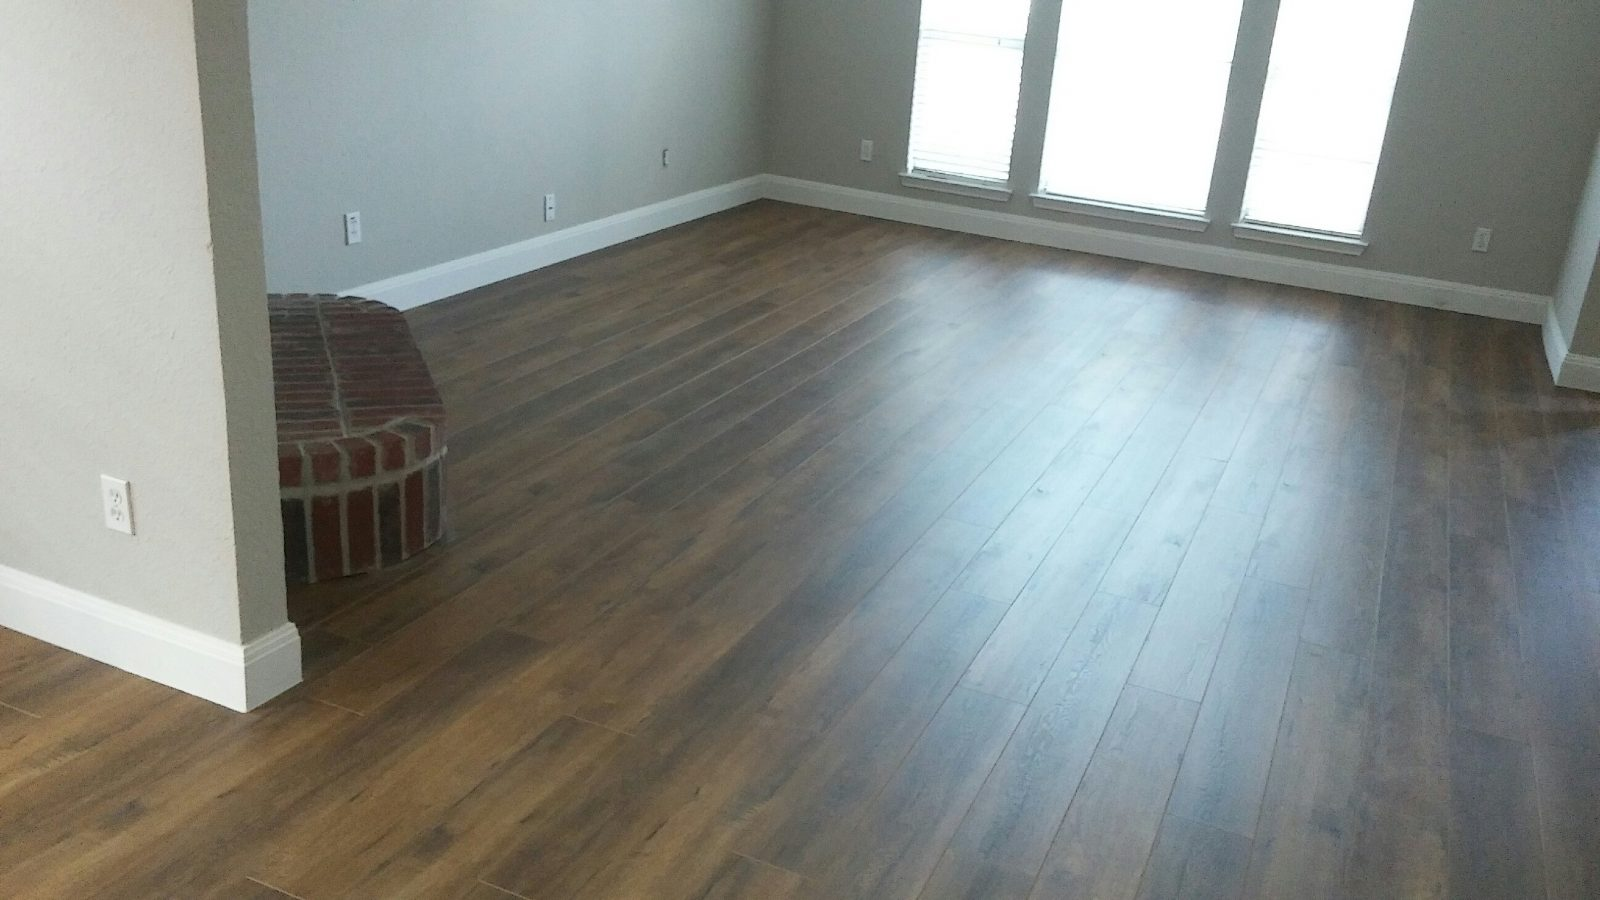 New Laminate Floors, Baseboards, and Paint Ft Worth, TX